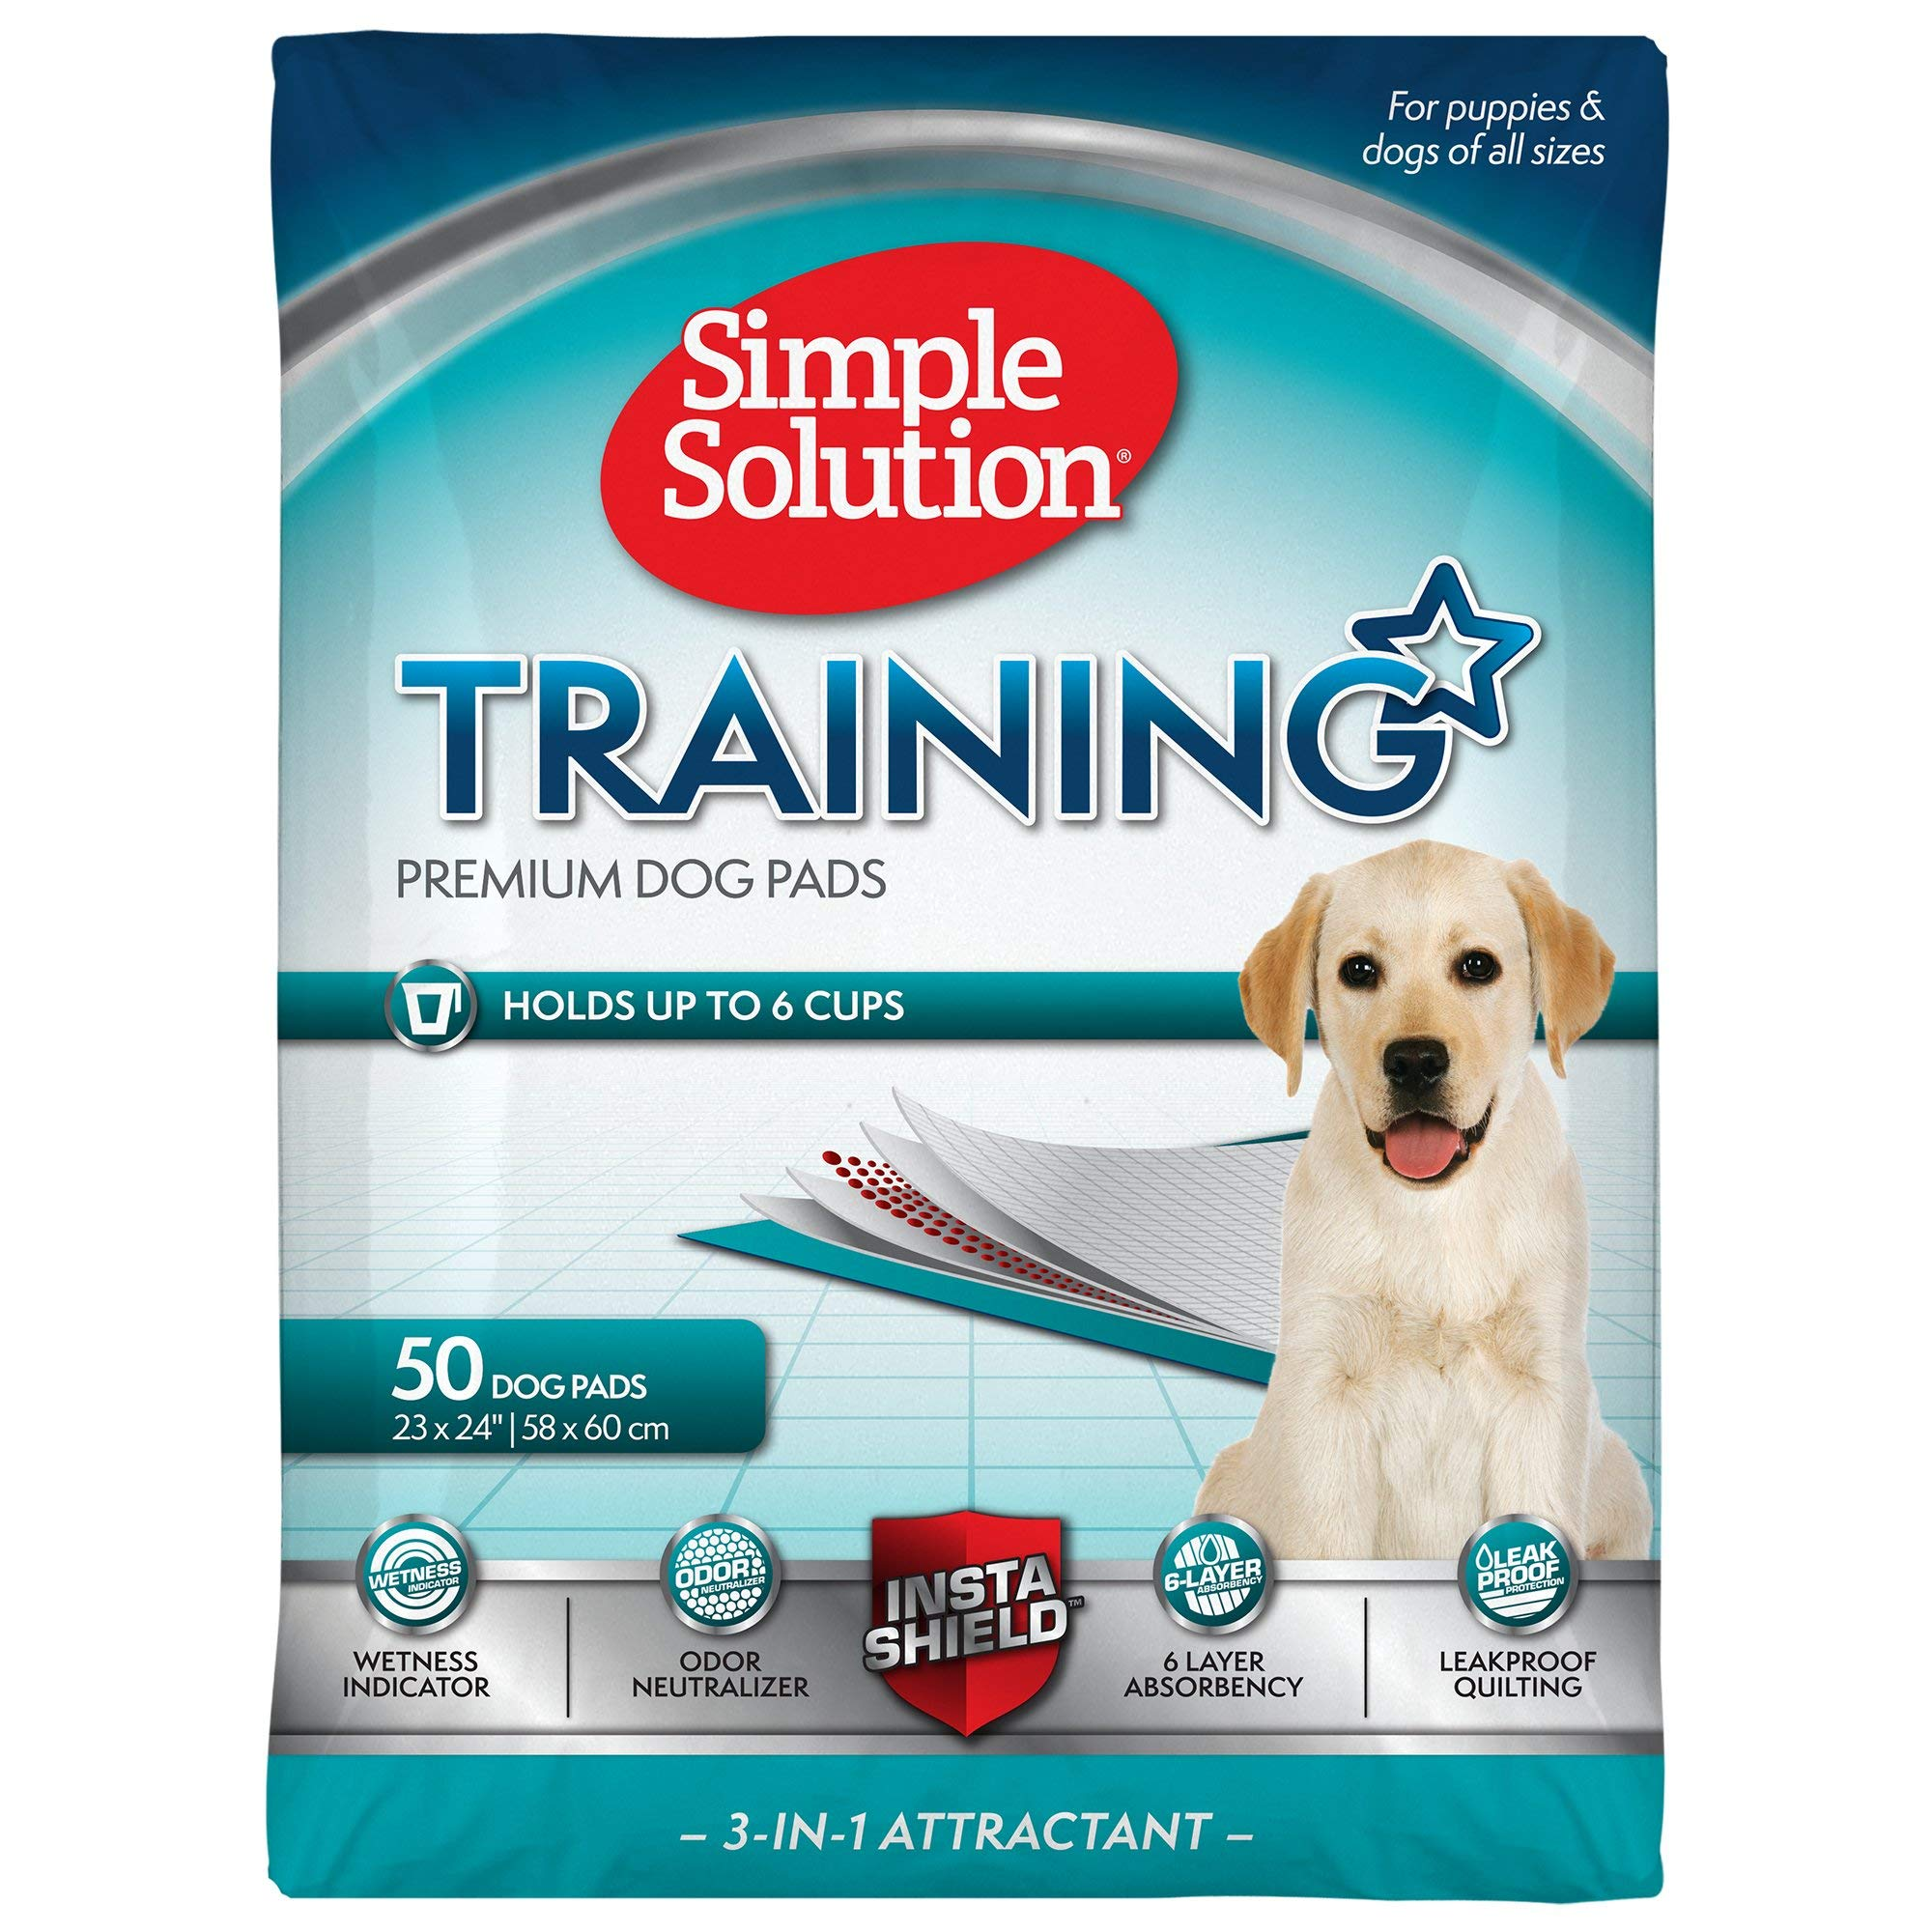 Simple Solution Original Puppy Training Pads 50pk by Simple Solution